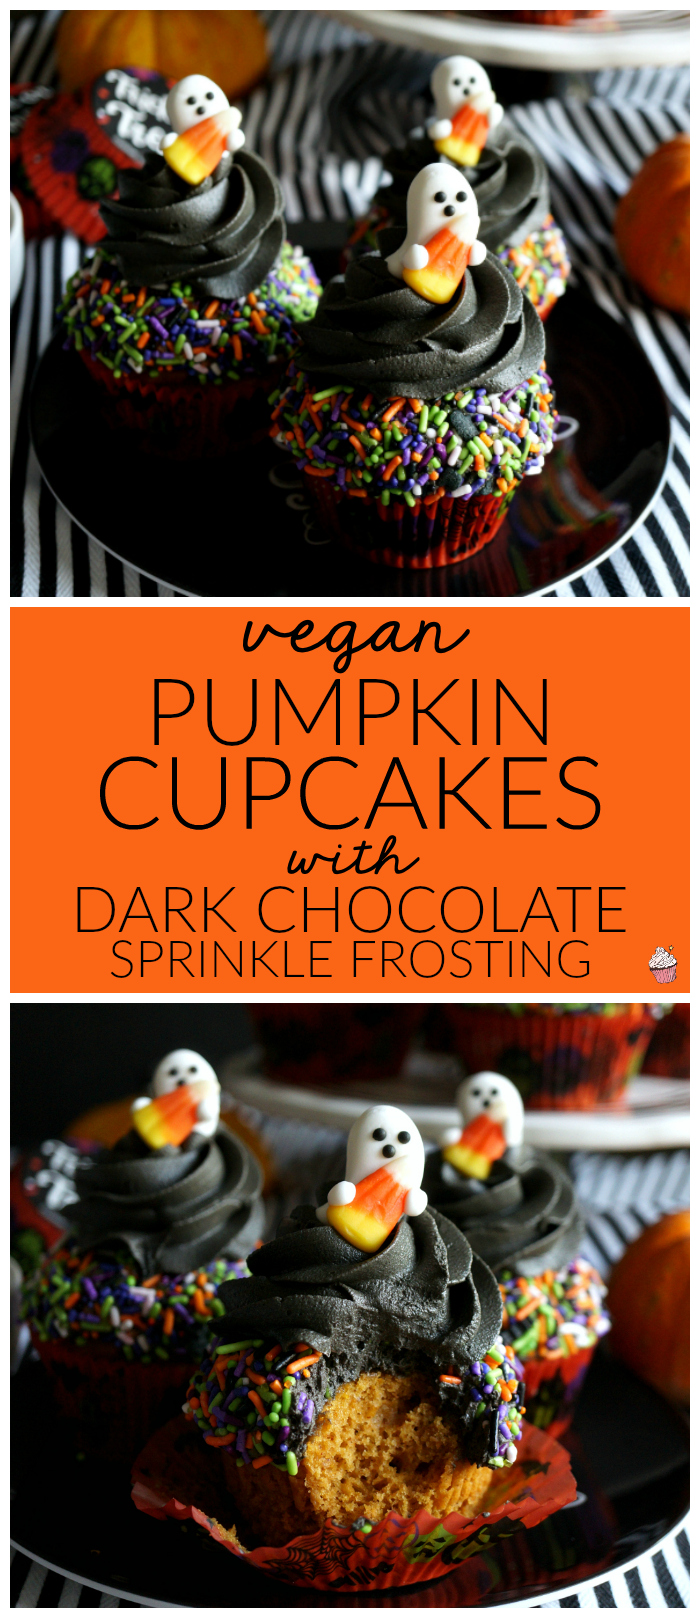 vegan pumpkin cupcakes with dark chocolate sprinkle frosting | The Baking Fairy #HalloweenTreatsWeek #ad